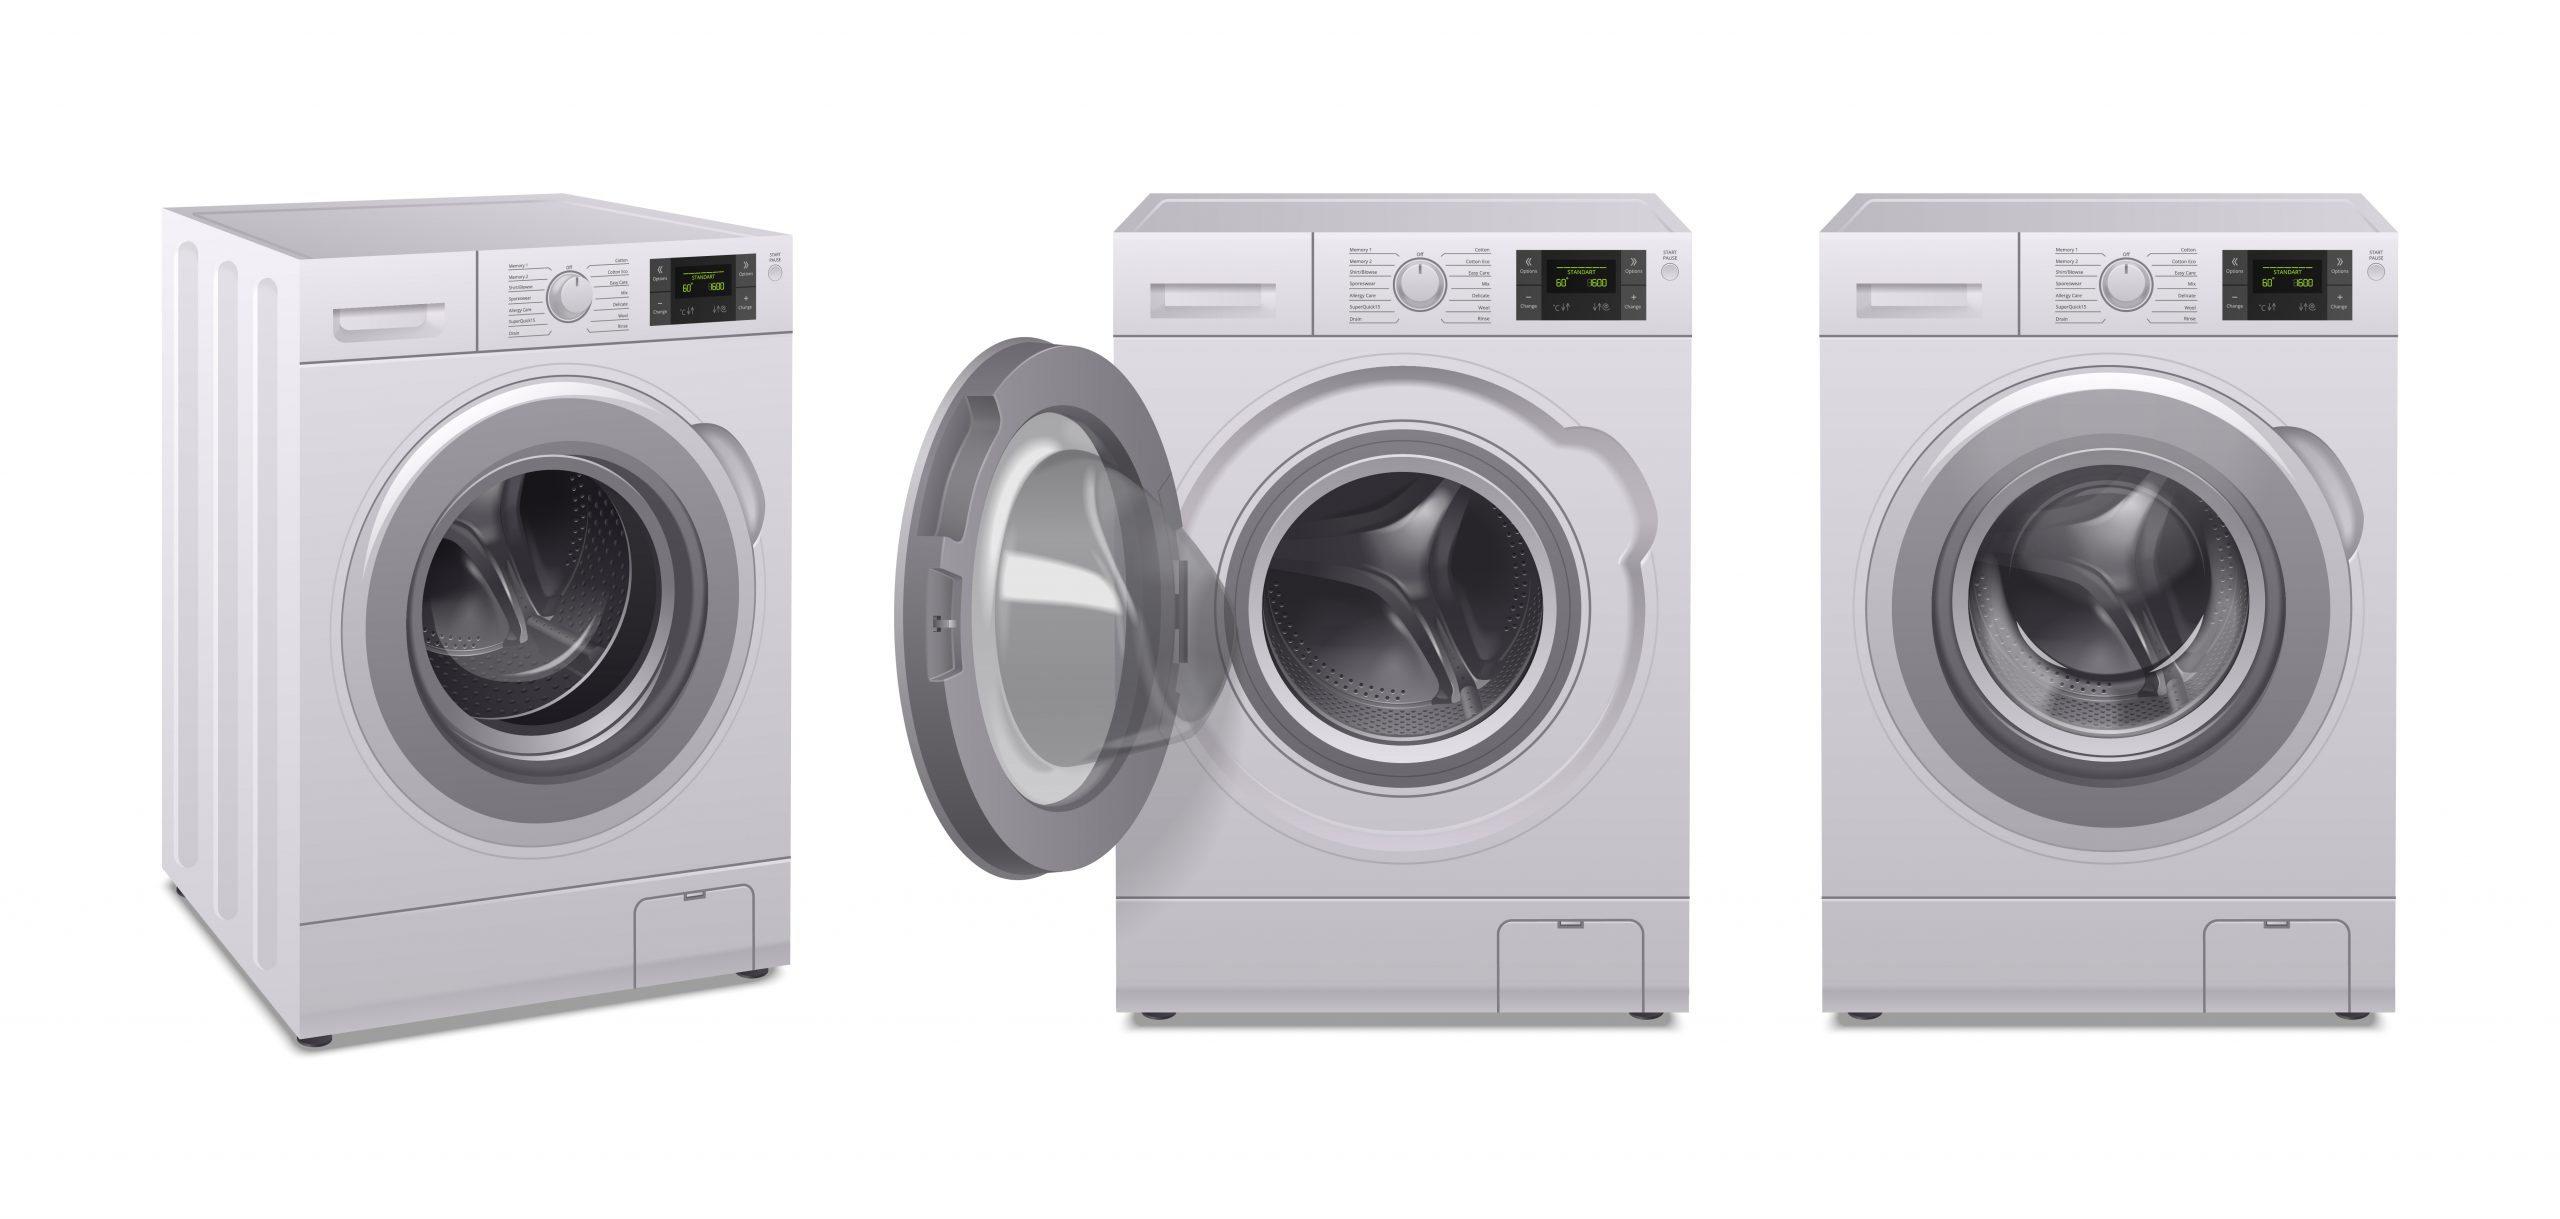 Best Deals for Washer and Dryer Set